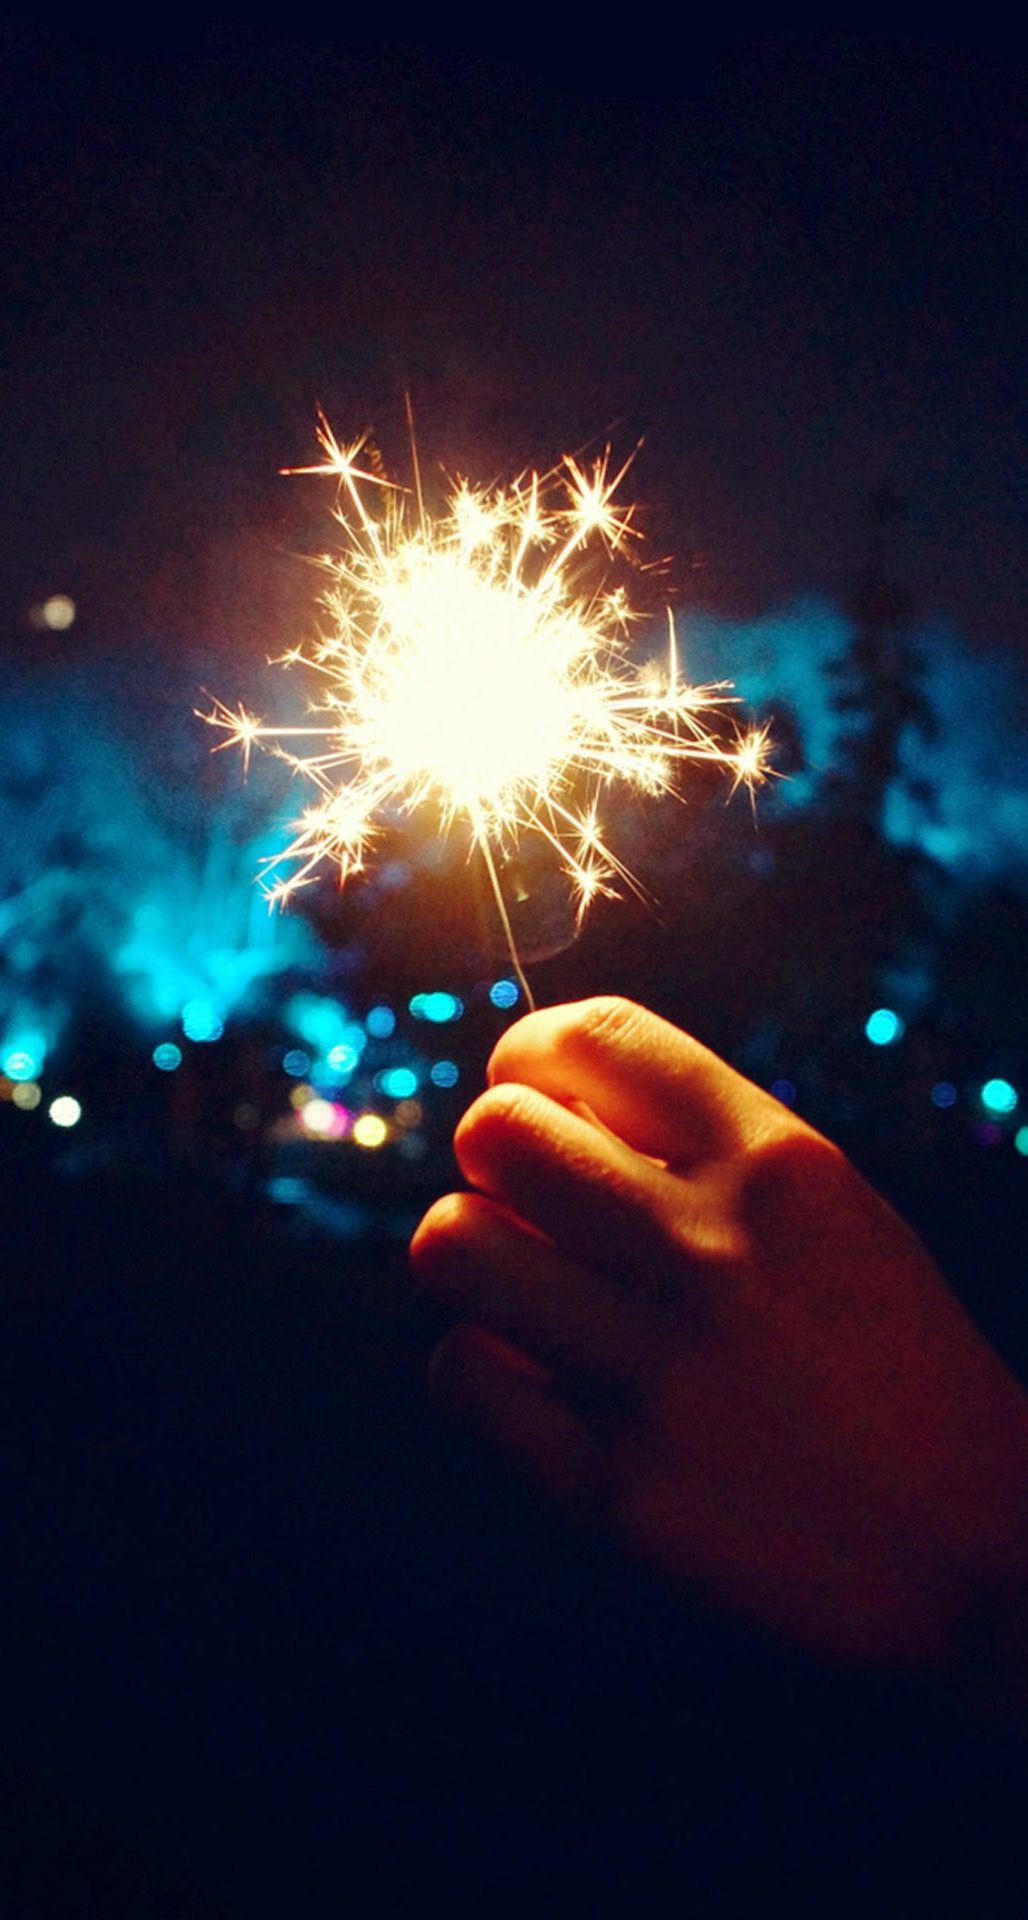 Happy New Year Fireworks Hand iPhone 6 Plus HD Wallpaper in 2019